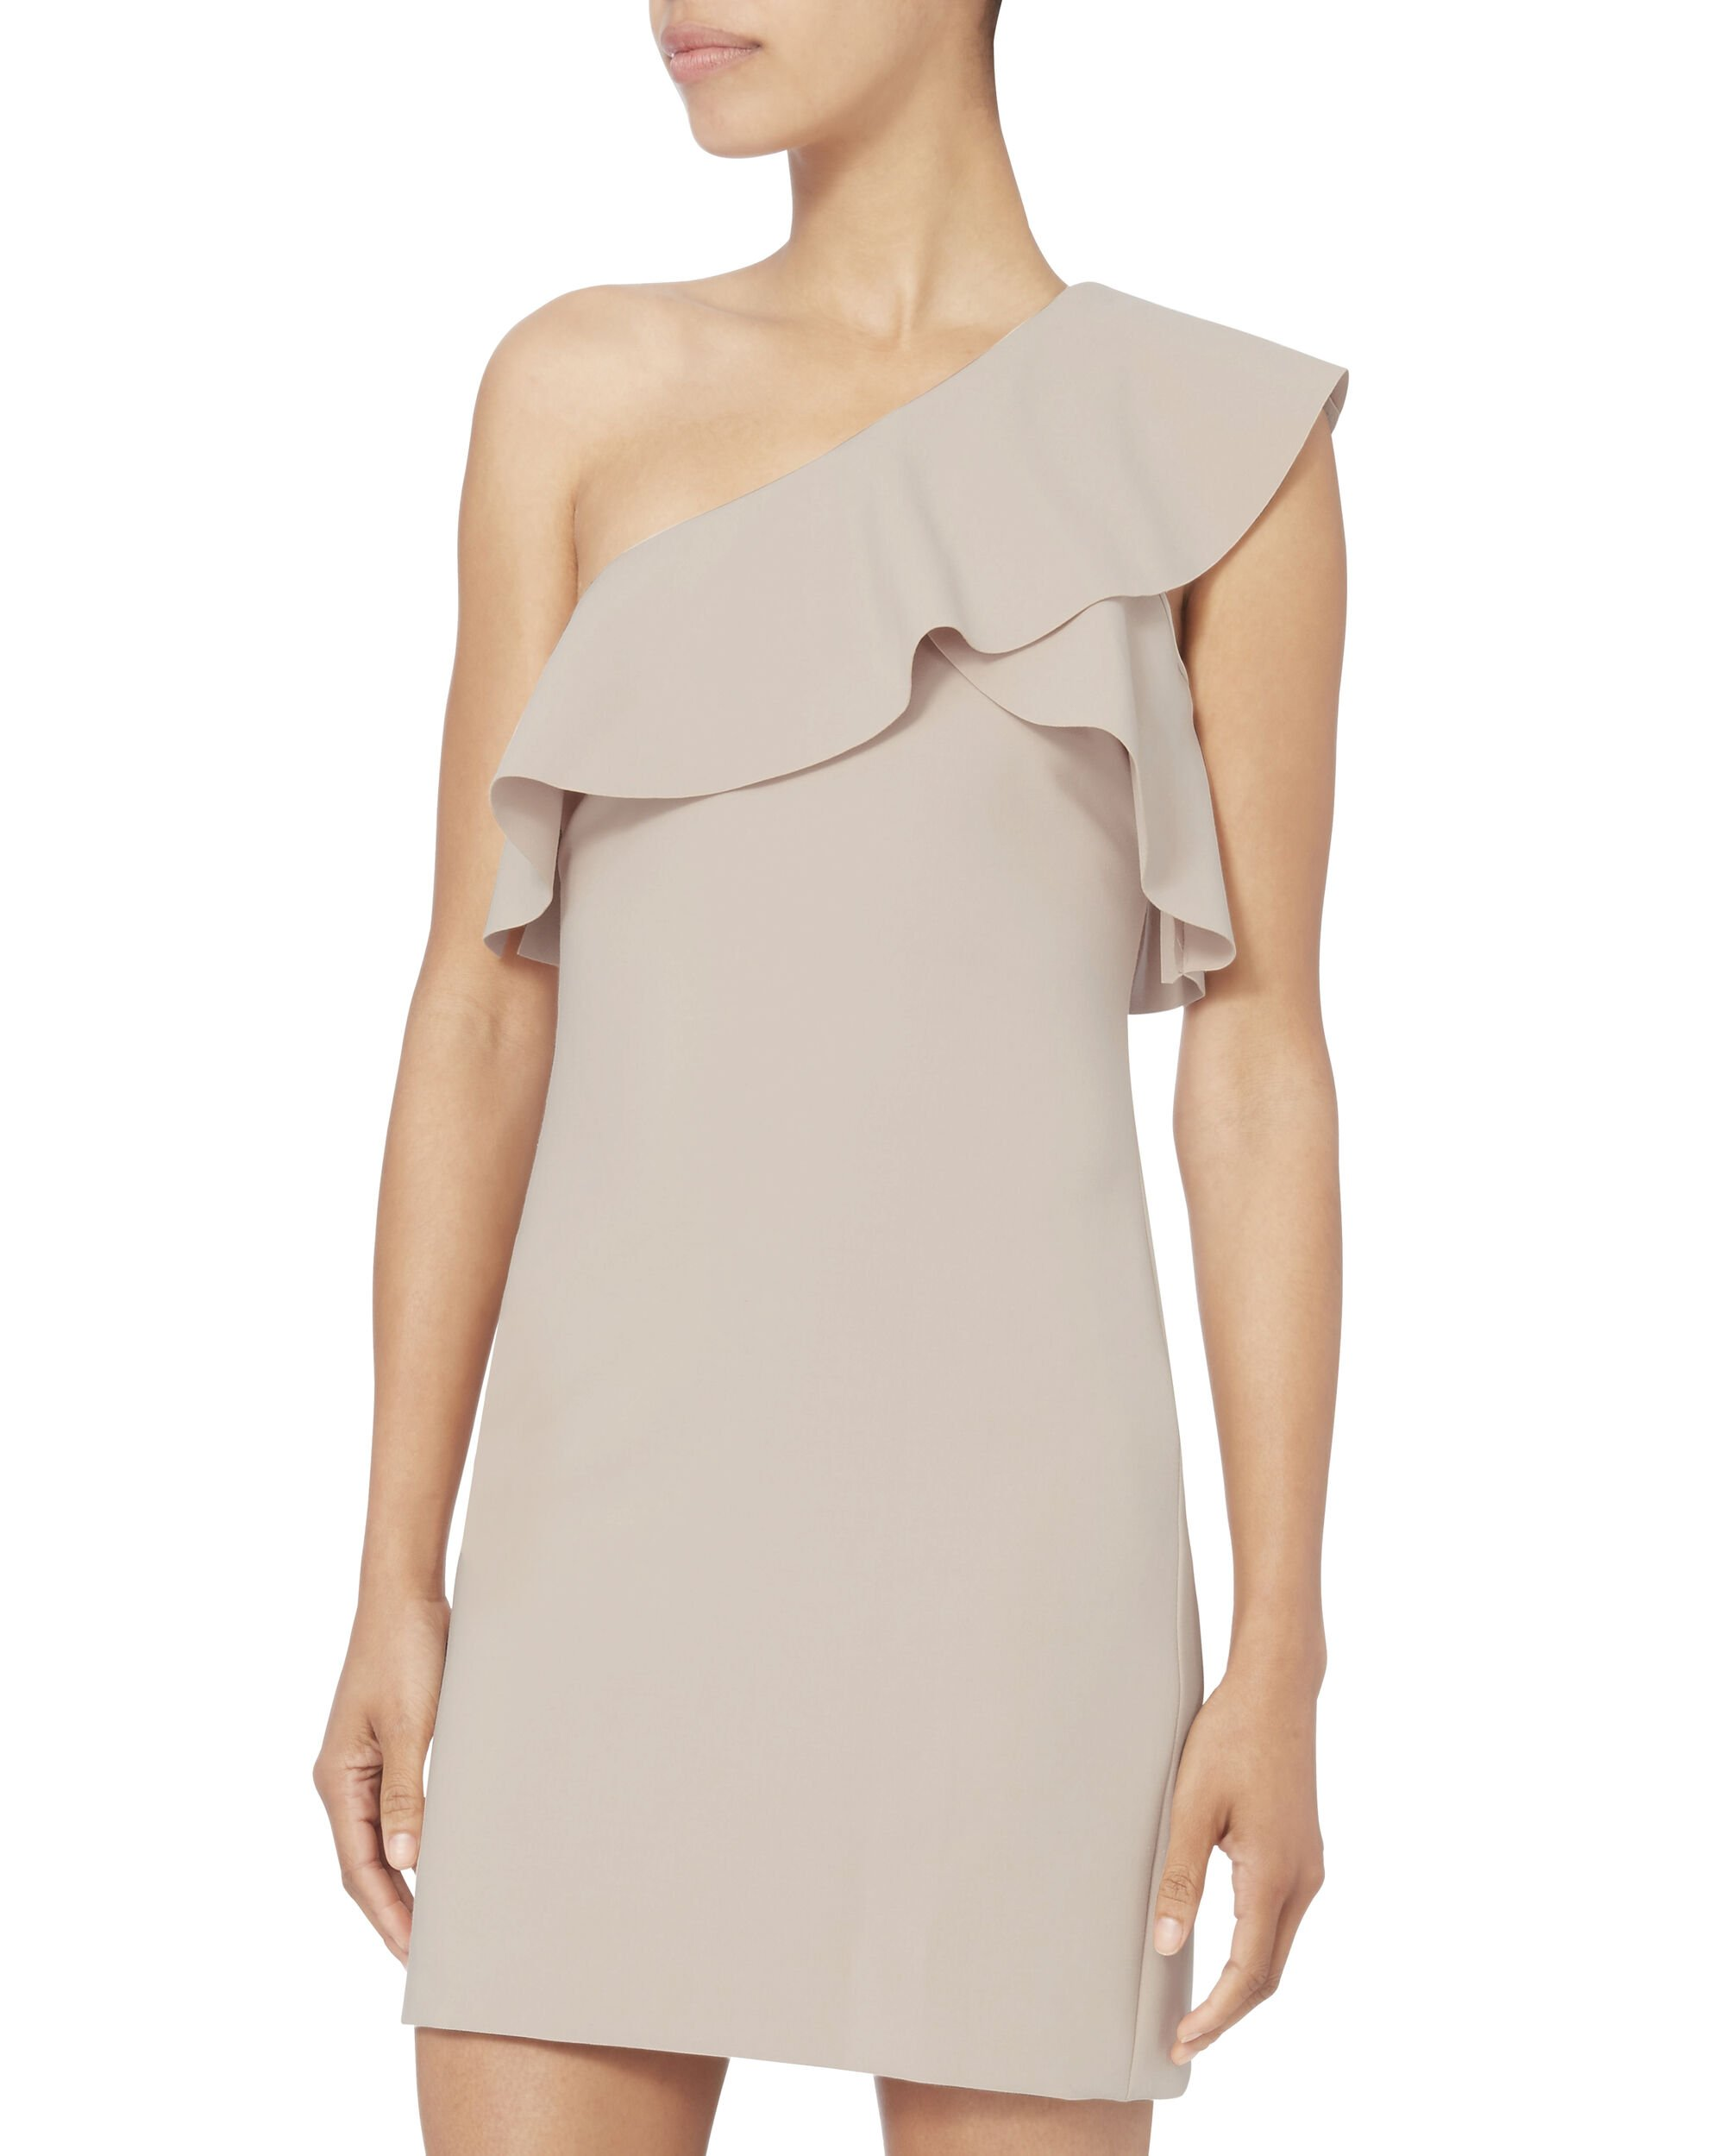 Jerard One Shoulder Ruffle Dress, BEIGE, hi-res